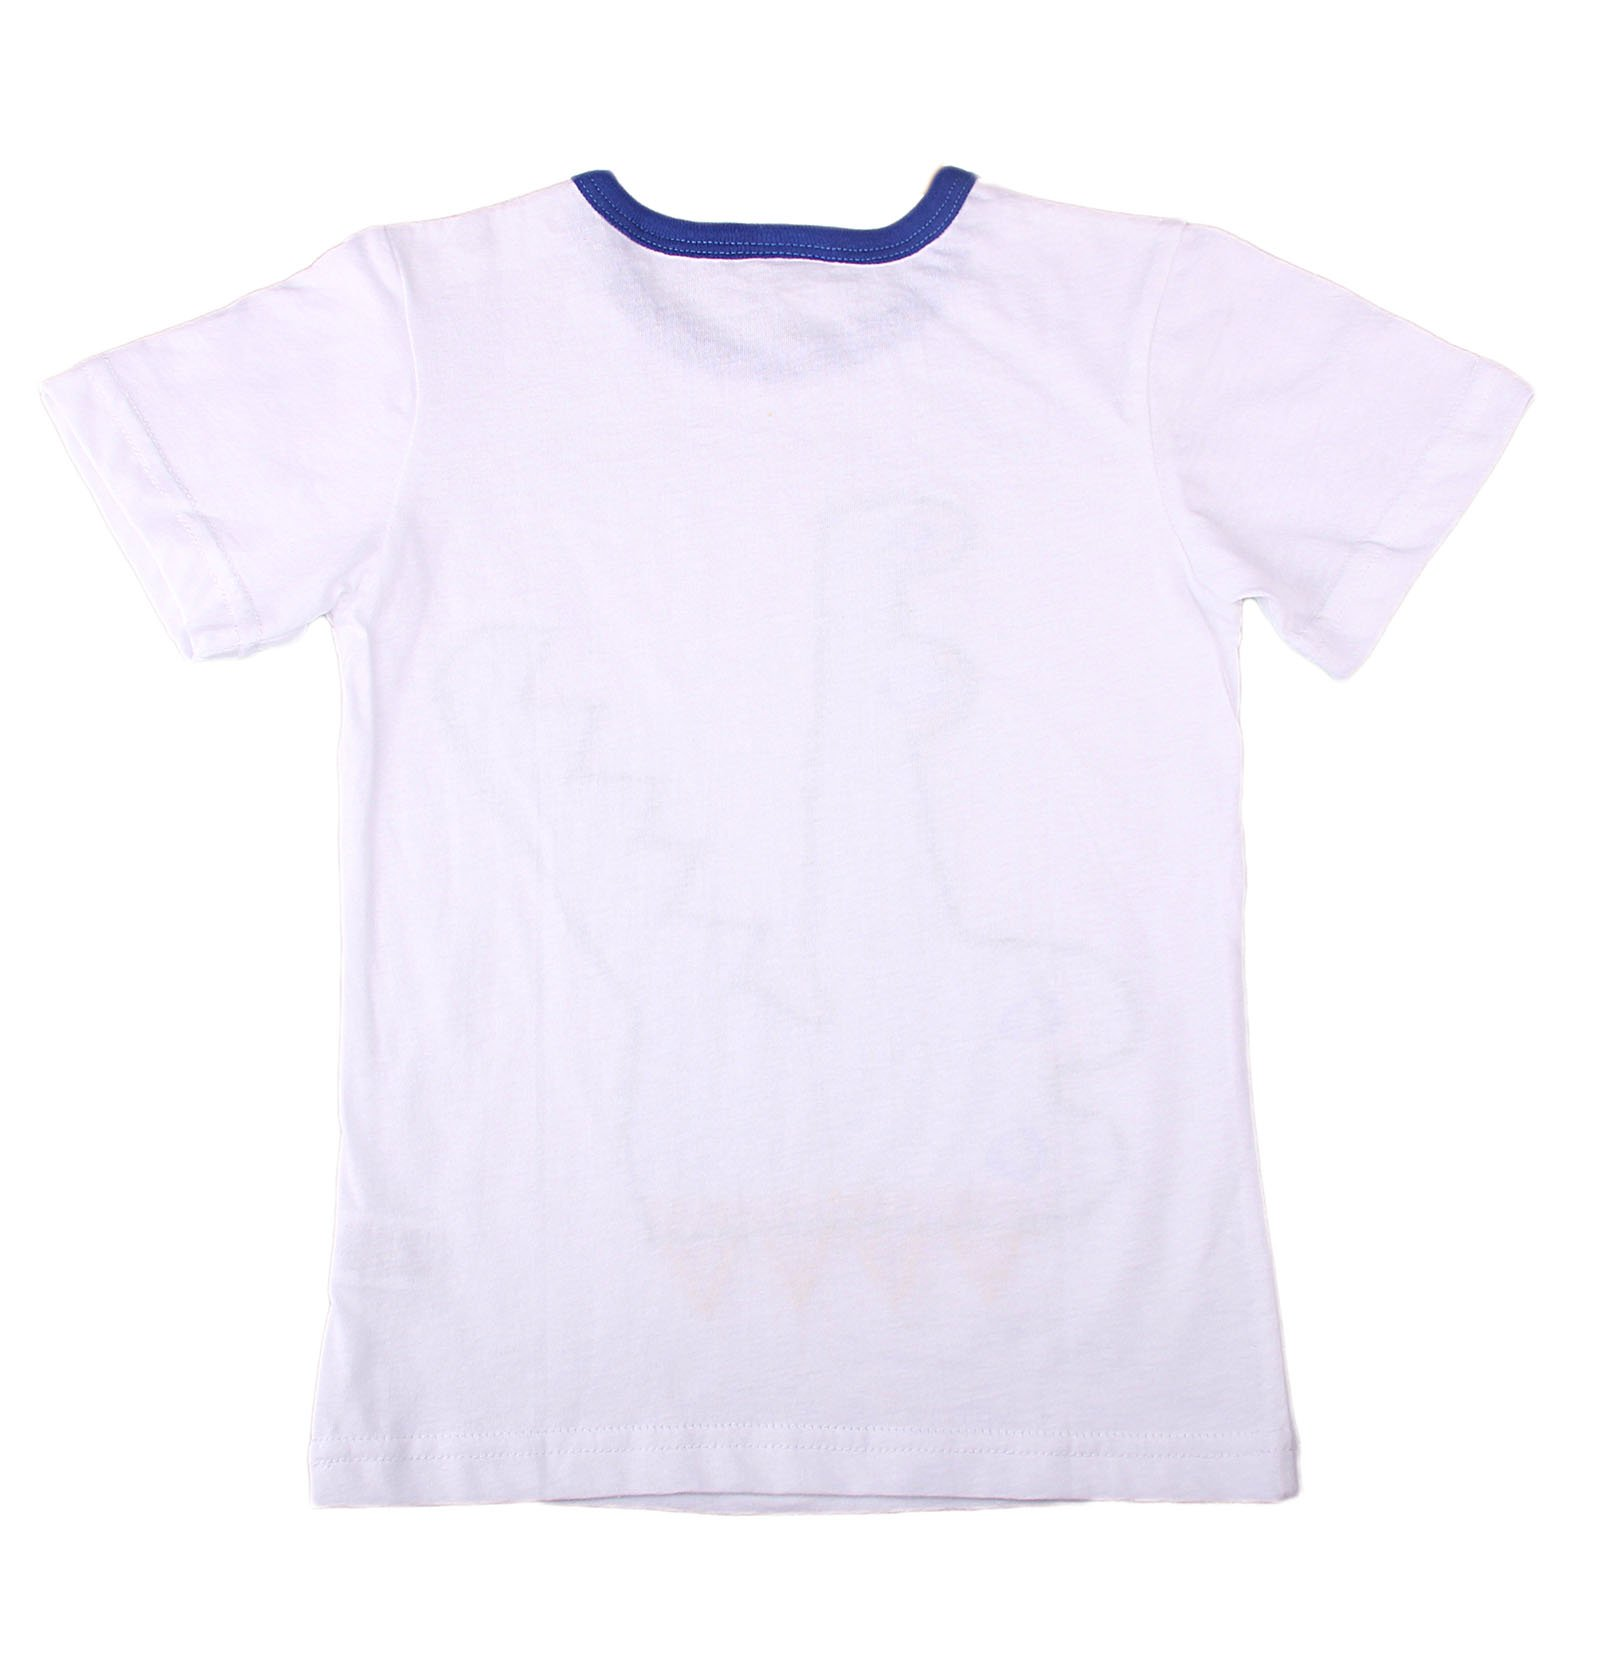 Dizoon Little Boys Tee Alligator Summer Tops Toddler Crew Neck Casual T-Shirts by Dizoon (Image #2)